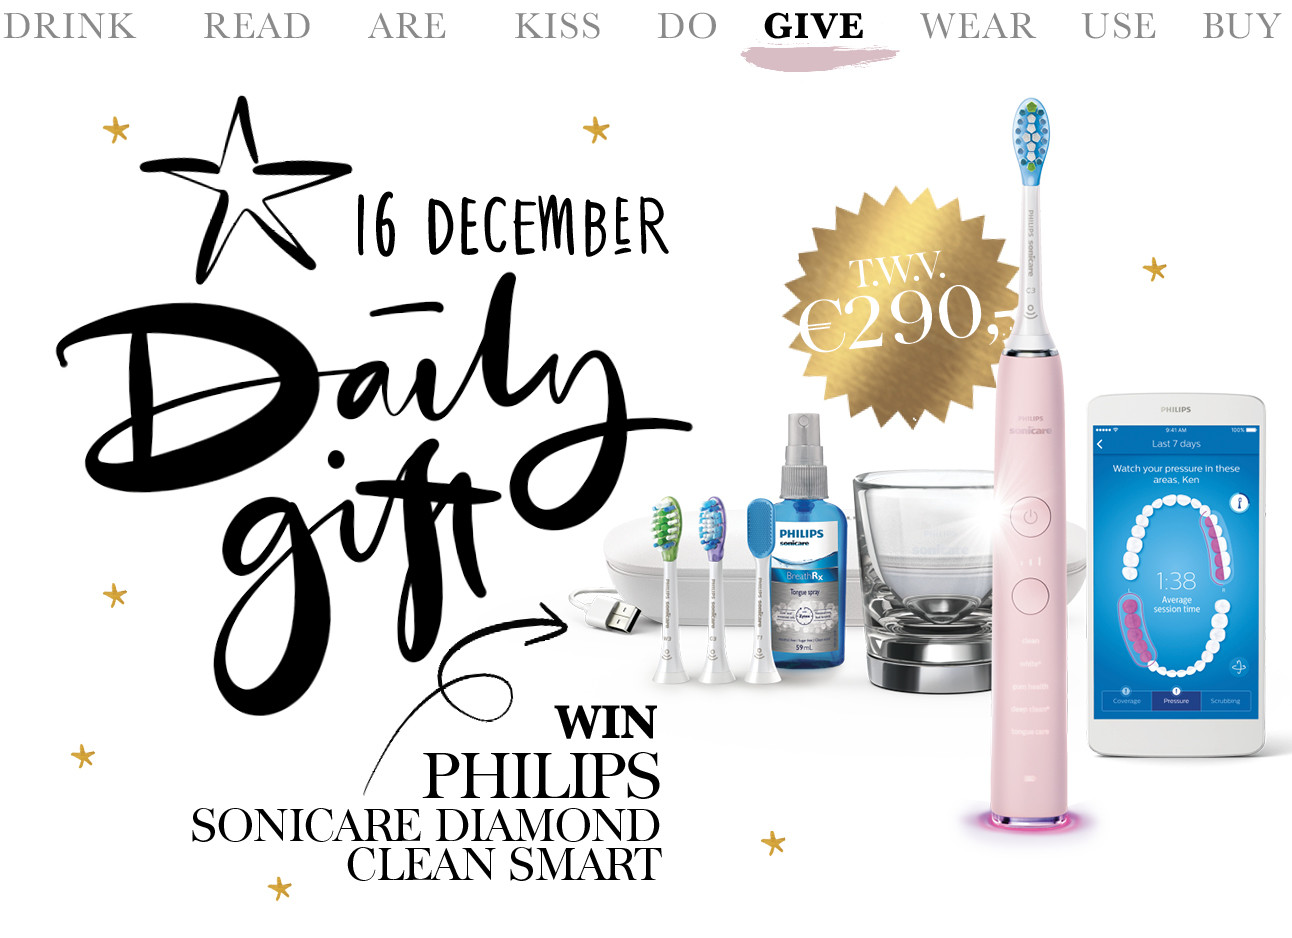 today we give philips sonicare